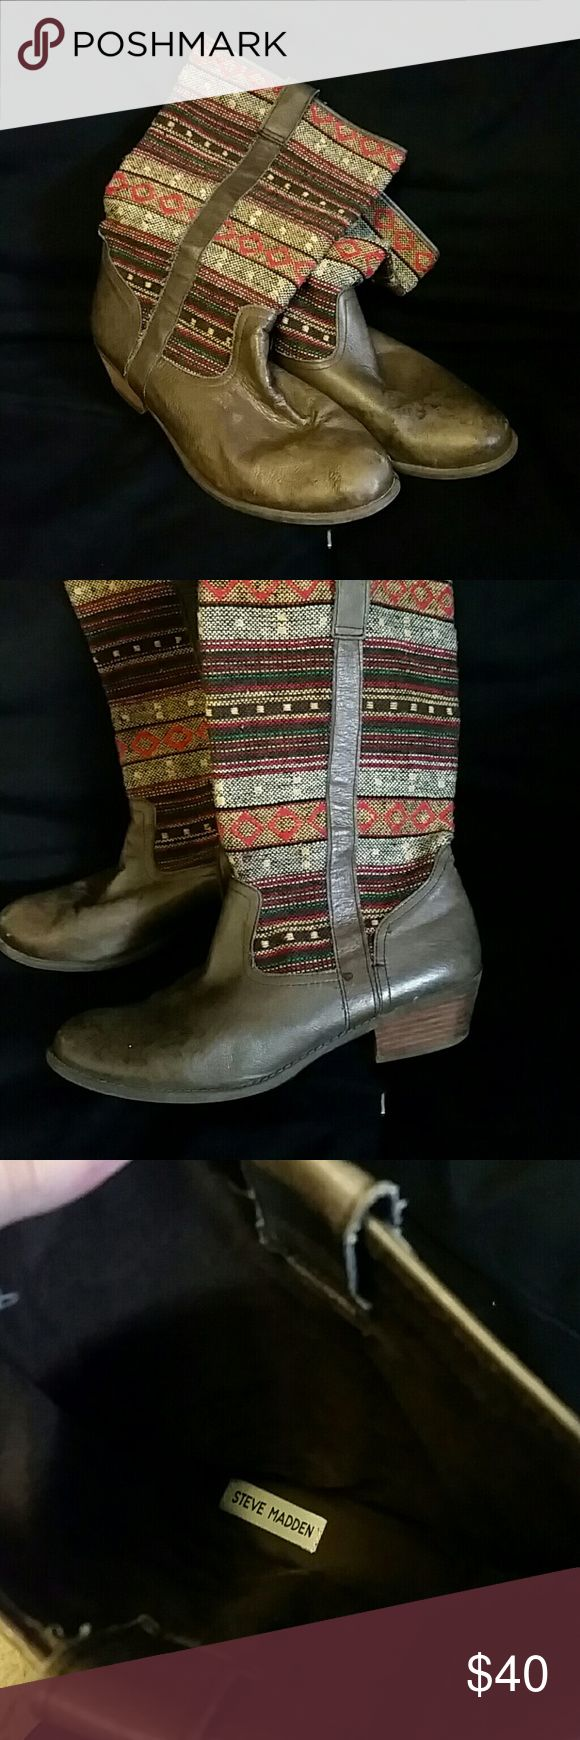 Steve madden boots Cowboy style boots with fabric tribal print. I think they are a size 9. I'm an 8 and I had to wear two pairs of socks for then to fit. They are worn but are very well made and have a lot of life left. I just don't wear them anymore, but love them. Steve Madden Shoes Combat & Moto Boots